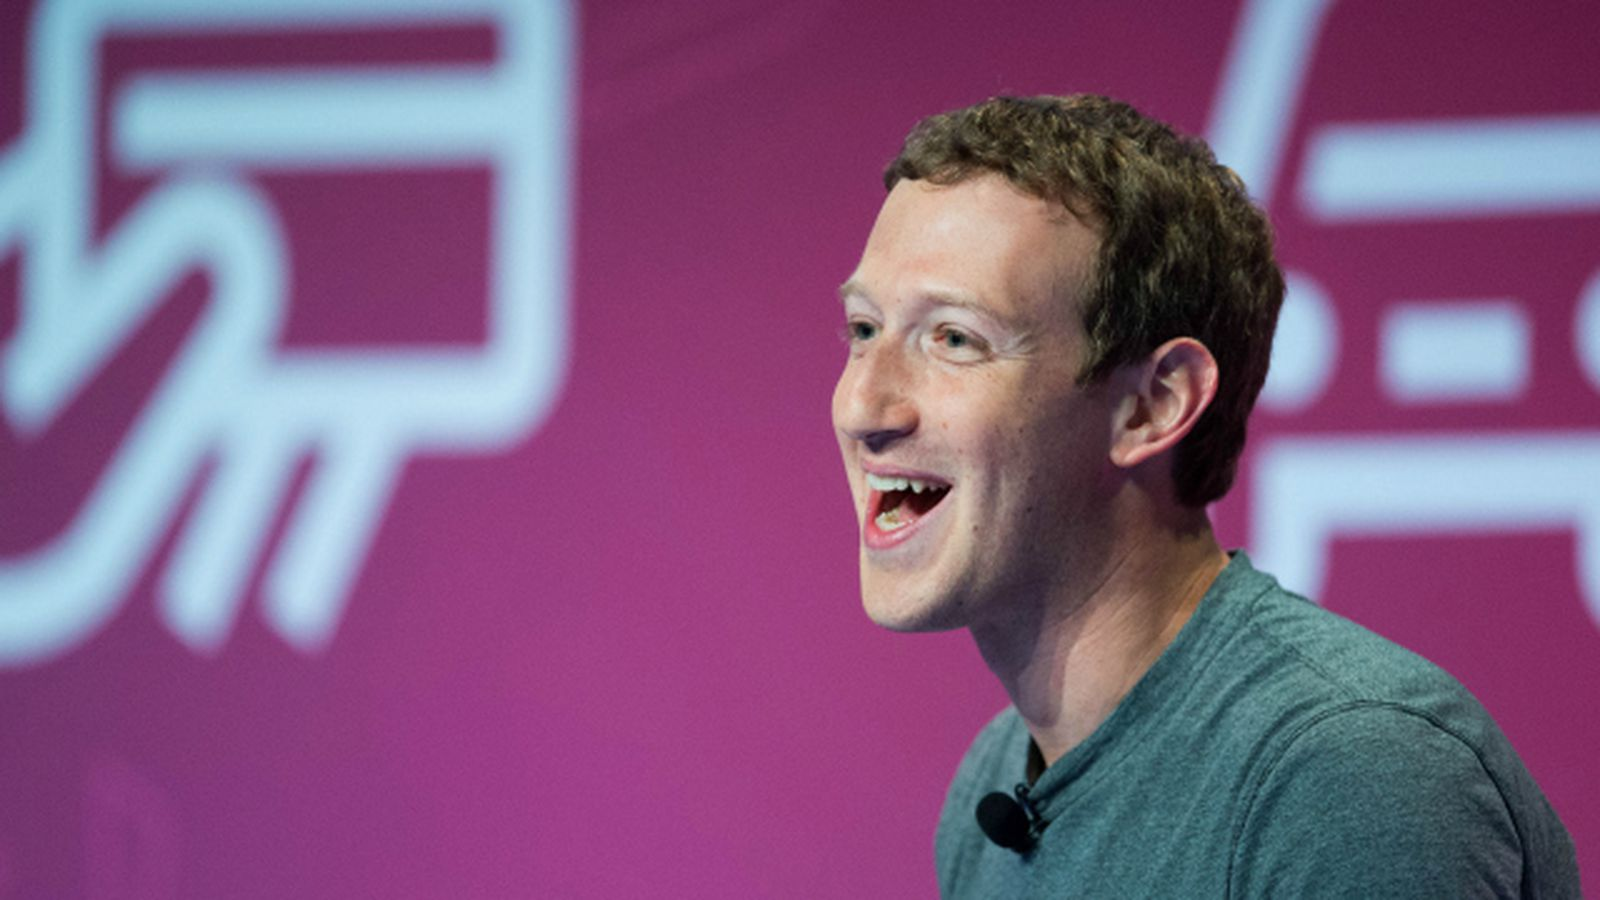 recode.net - Facebook is putting ads everywhere in hopes of finding the next News Feed